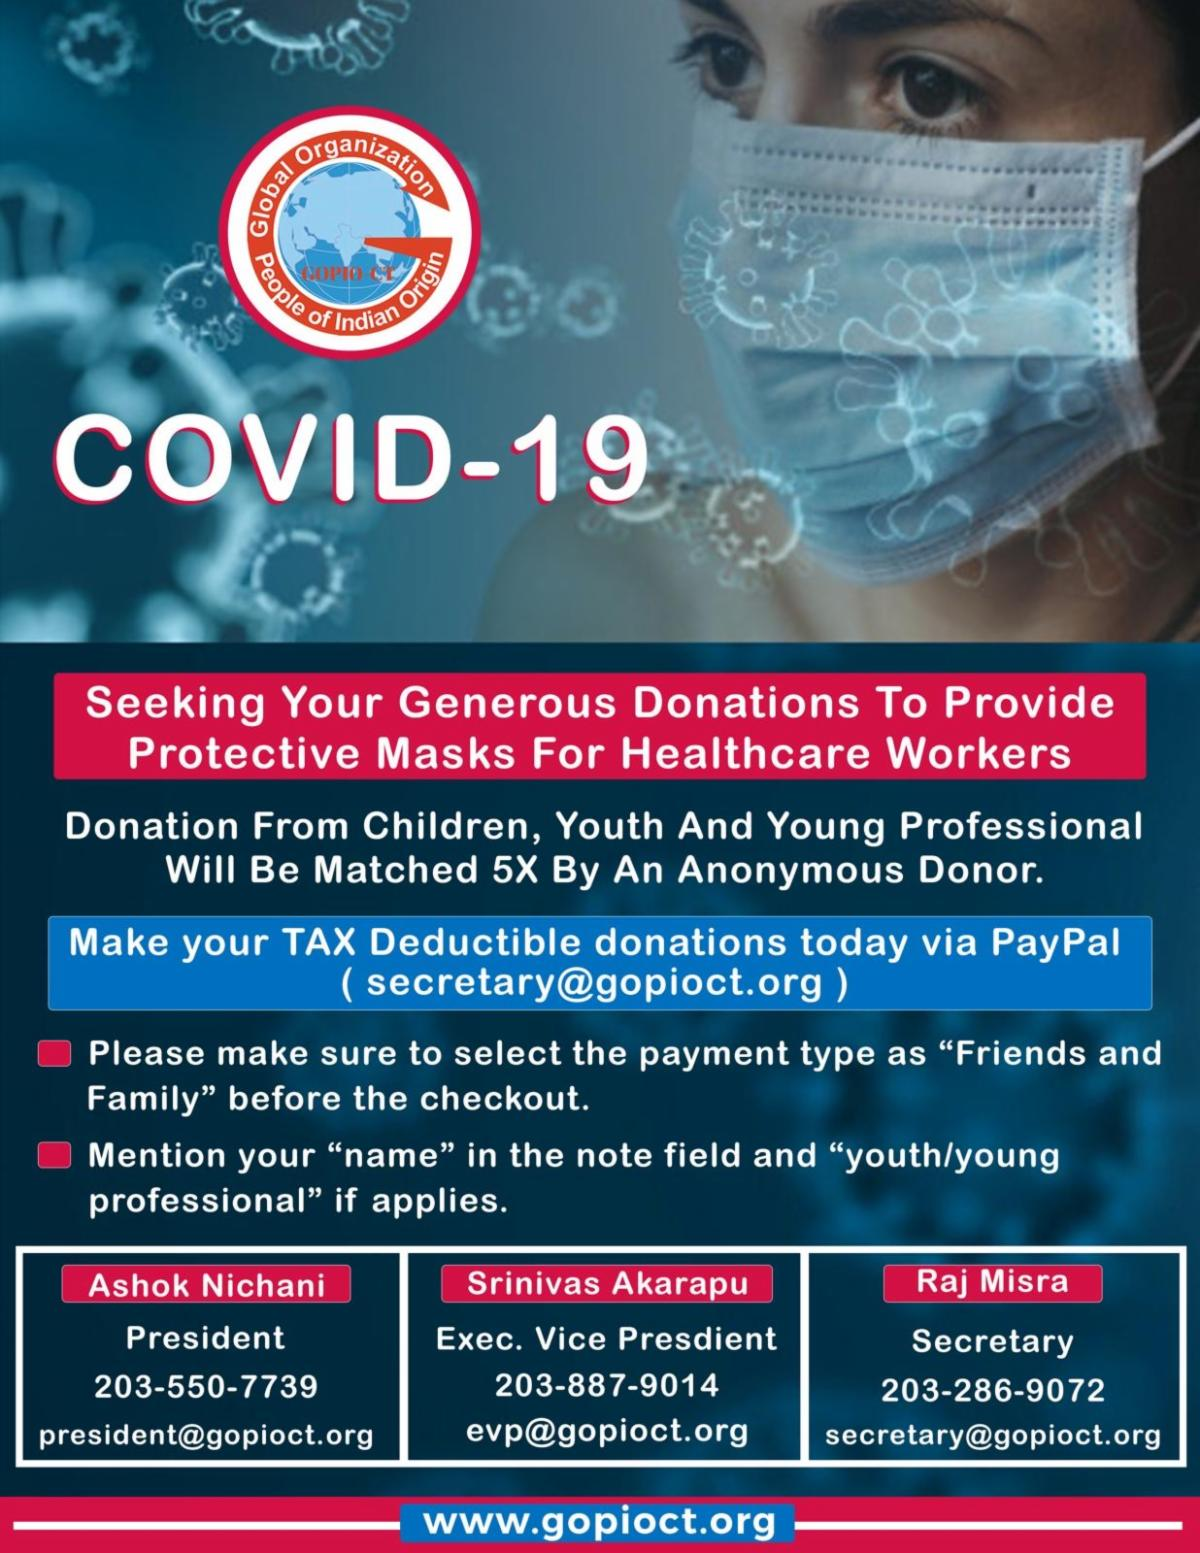 GOPIO-CT Raising Funds for Masks for Frontline Workers